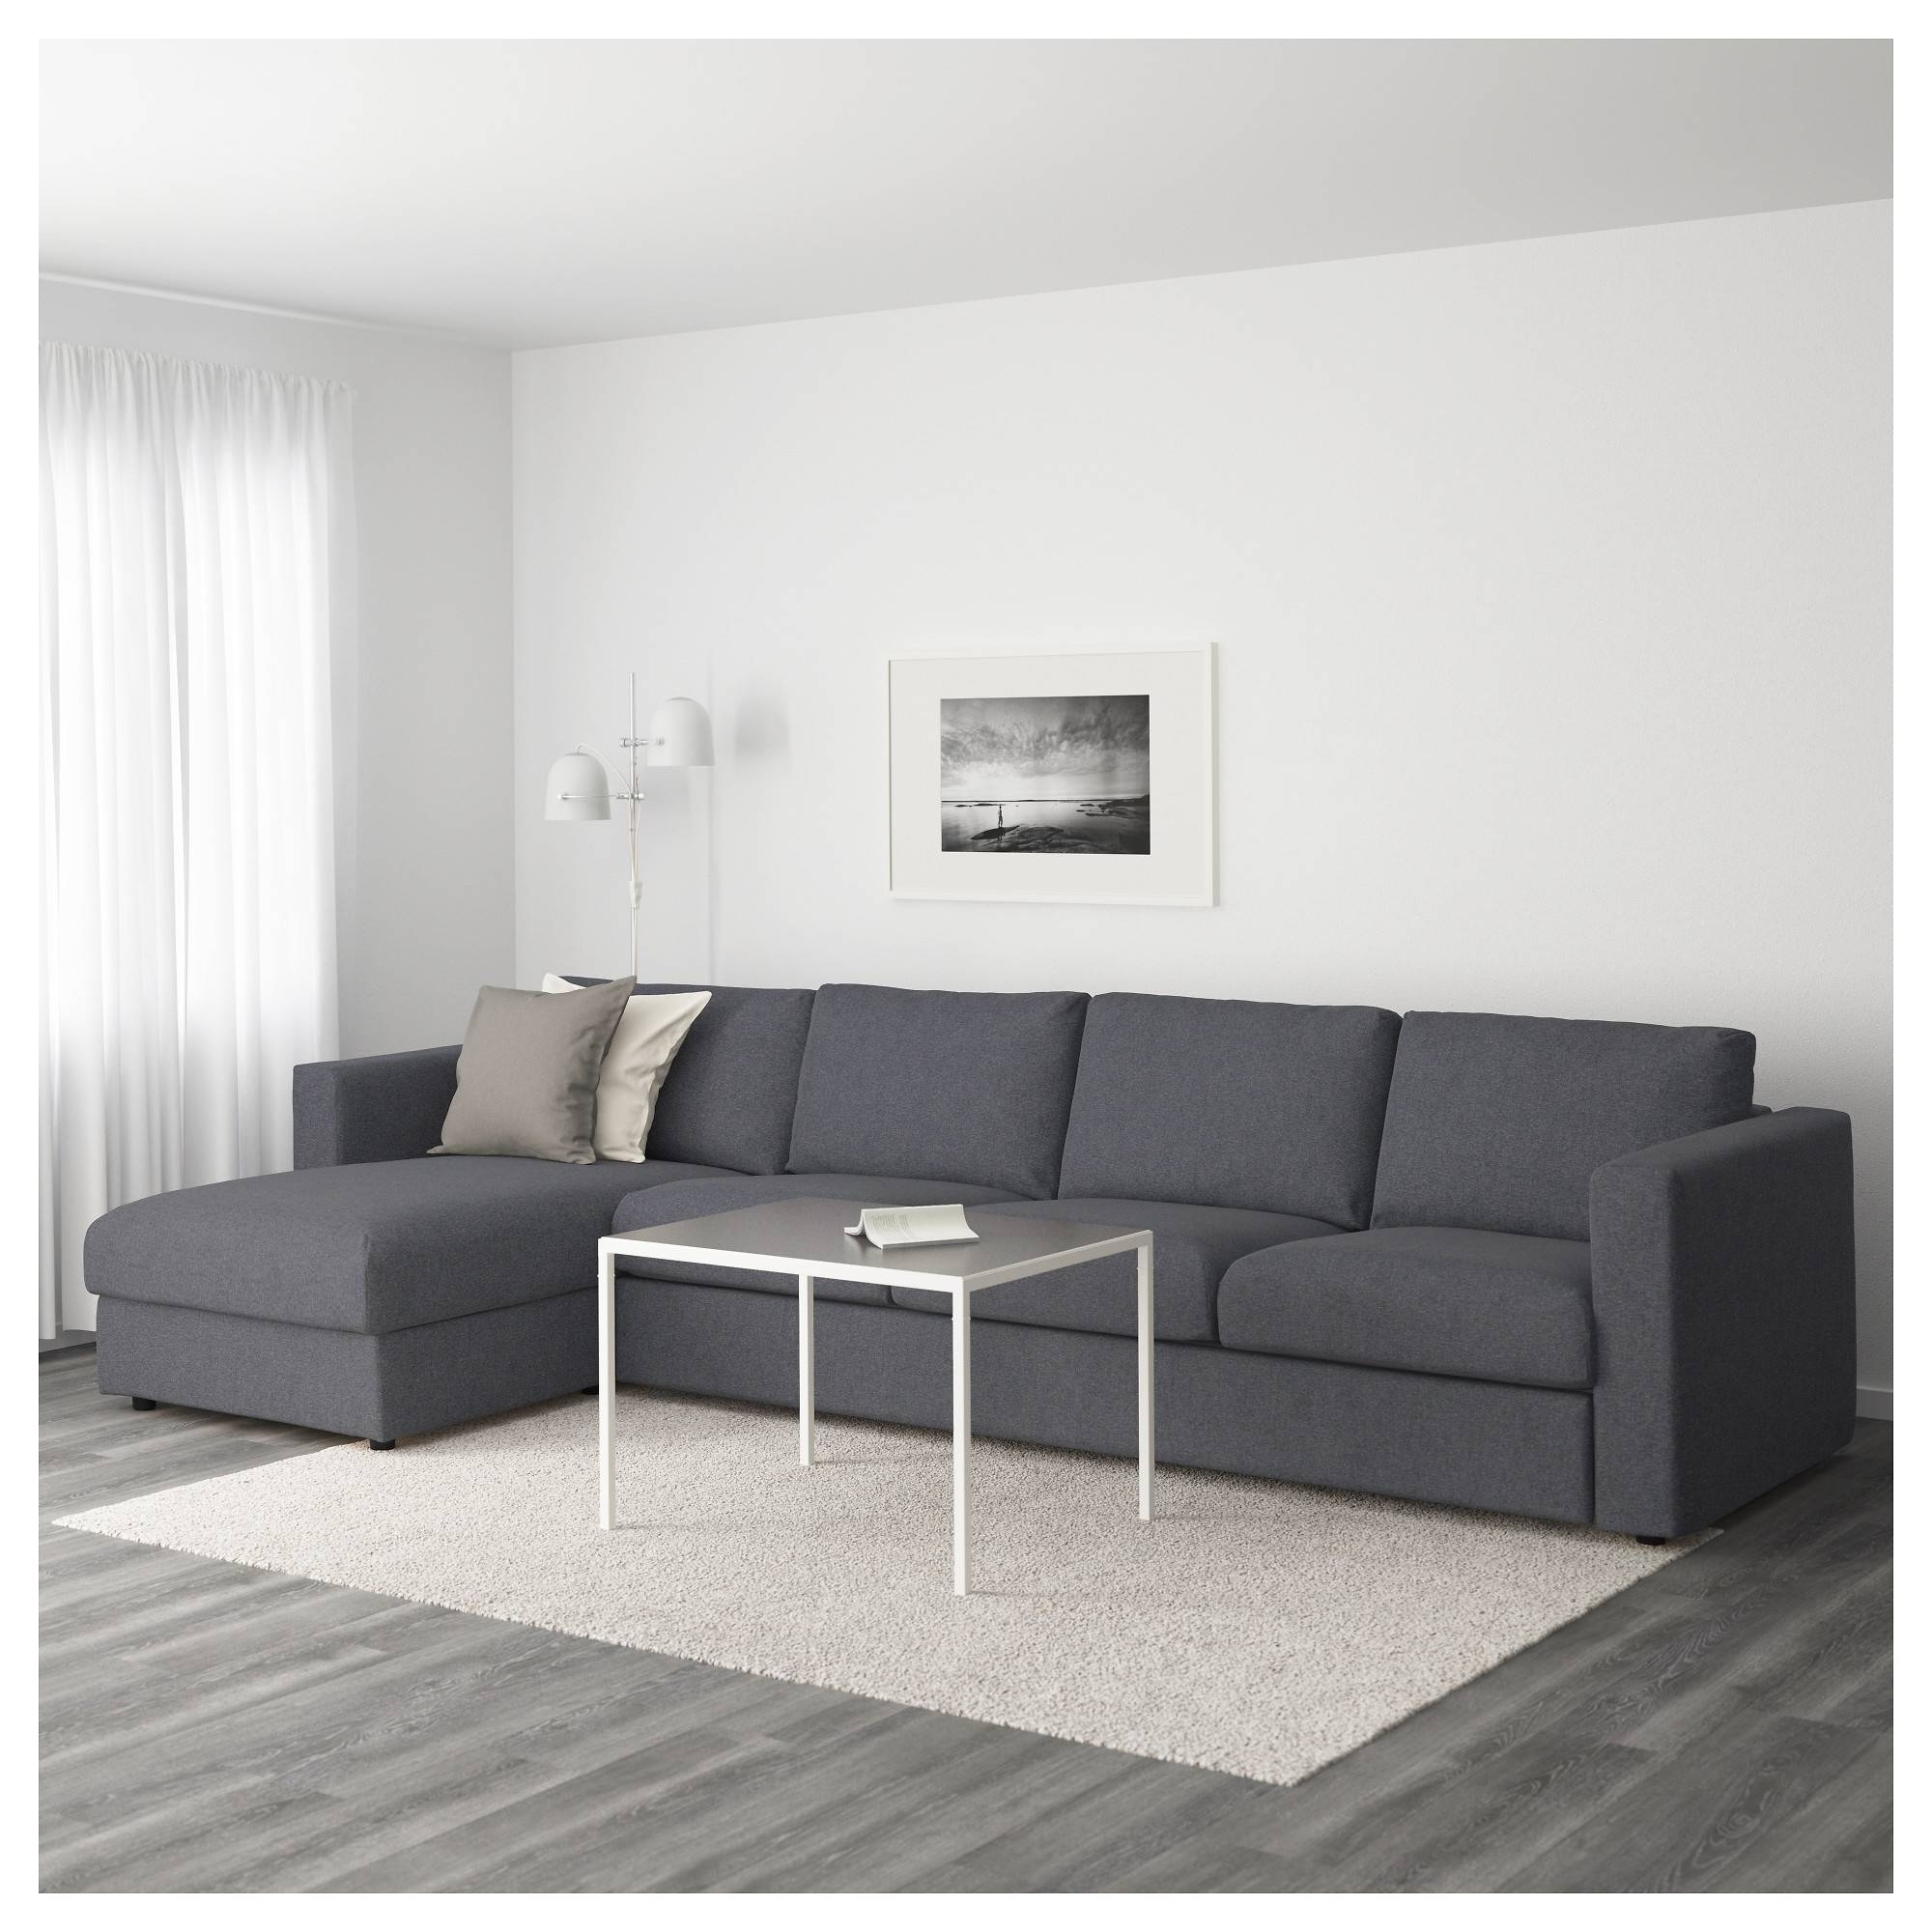 Vimle 4-Seat Sofa With Chaise Longue/gunnared Medium Grey - Ikea regarding 4 Seat Couch (Image 30 of 30)